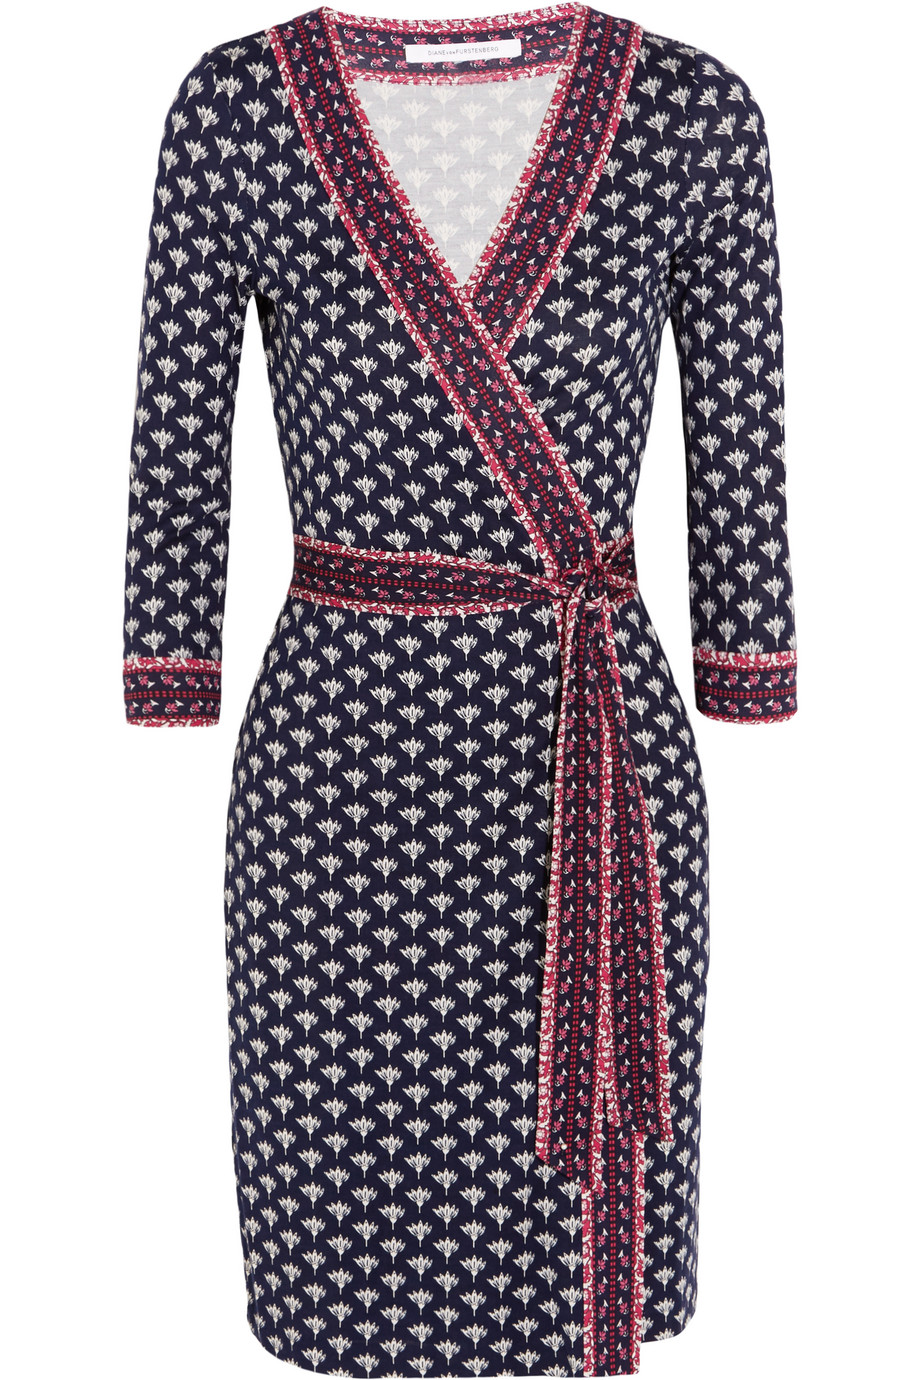 Diane Von Furstenberg Julian Printed Silk-Jersey Wrap Dress, Midnight Blue/Fuchsia, Women's - Printed, Size: 14